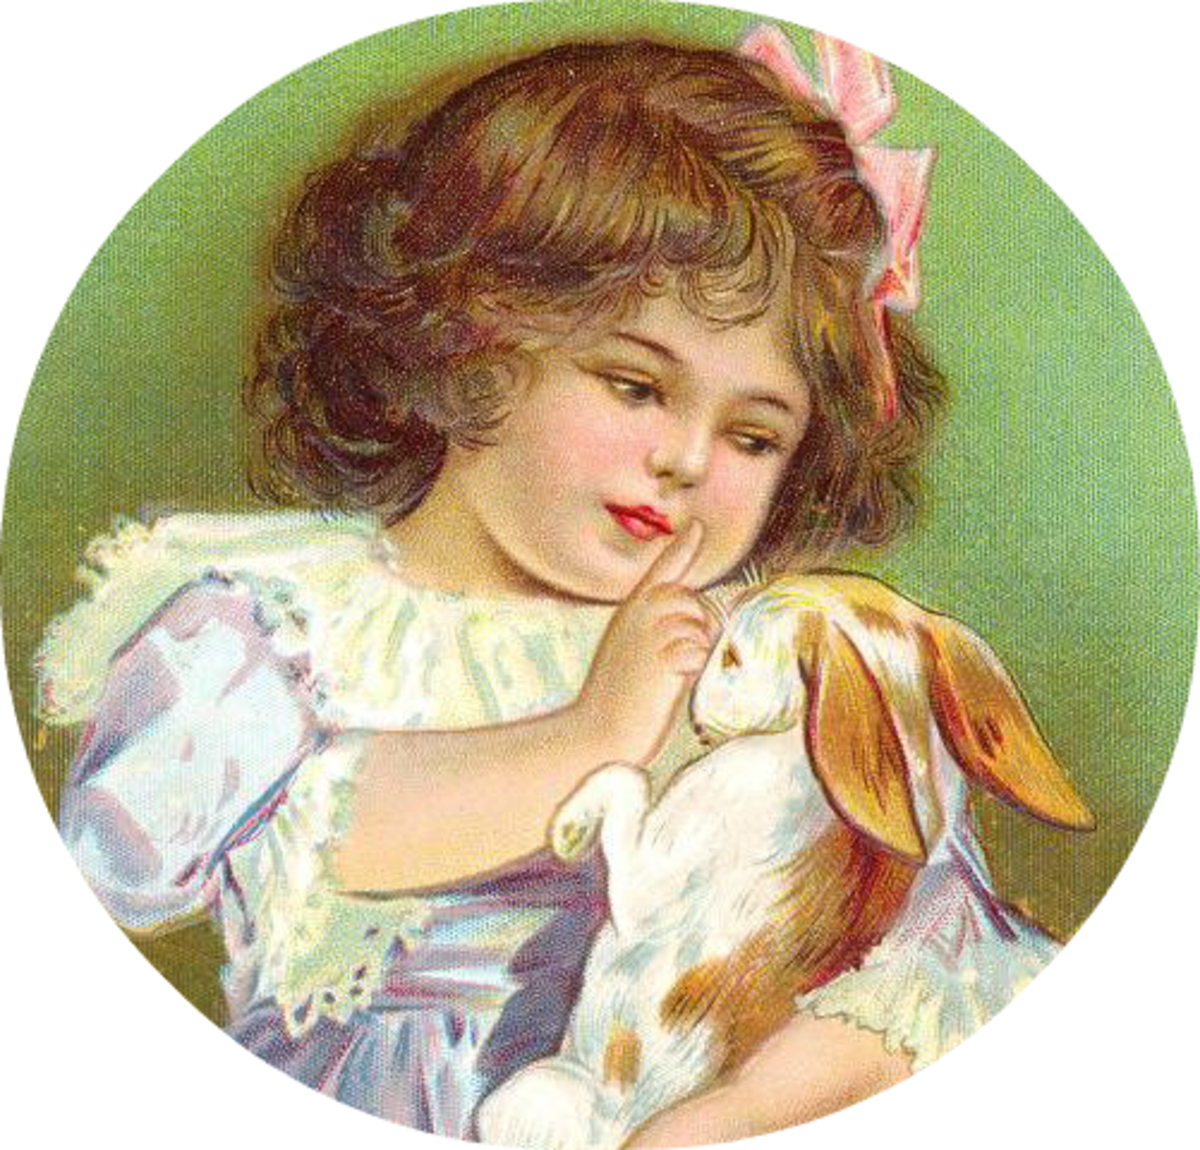 Please scroll down to see all the vintage Easter images